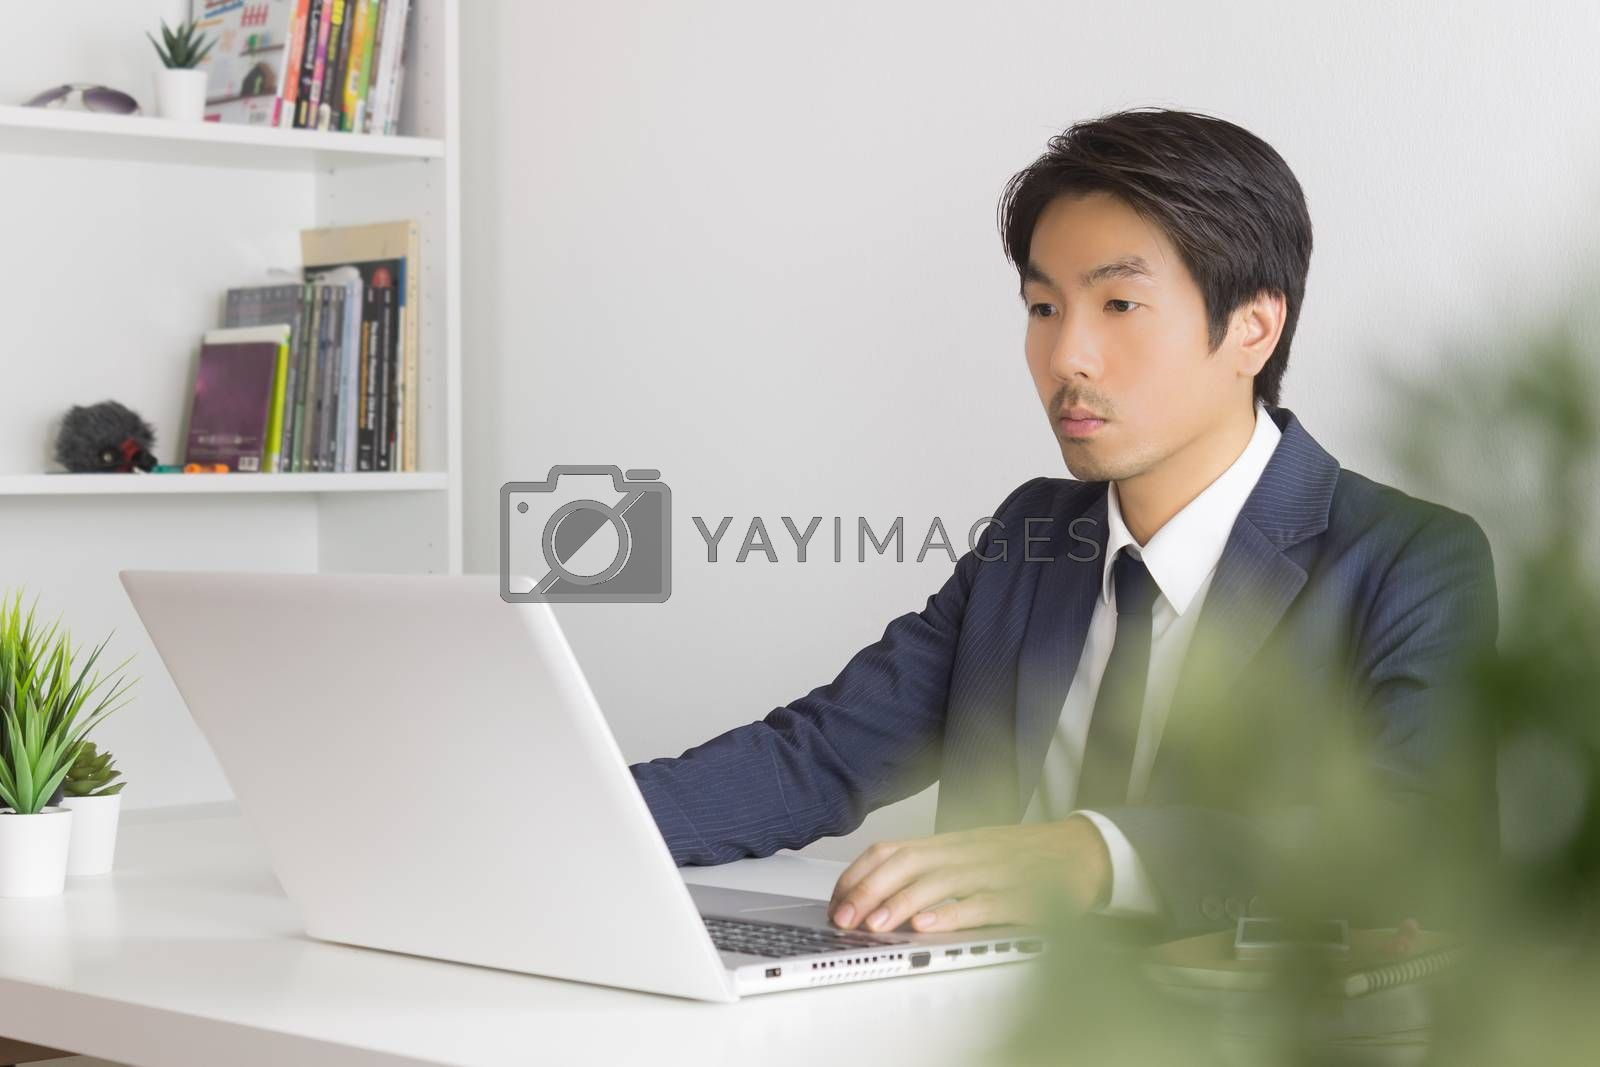 Asian Businessman In front of Laptop Monitor and Tree Foreground. Asian businessman working in office